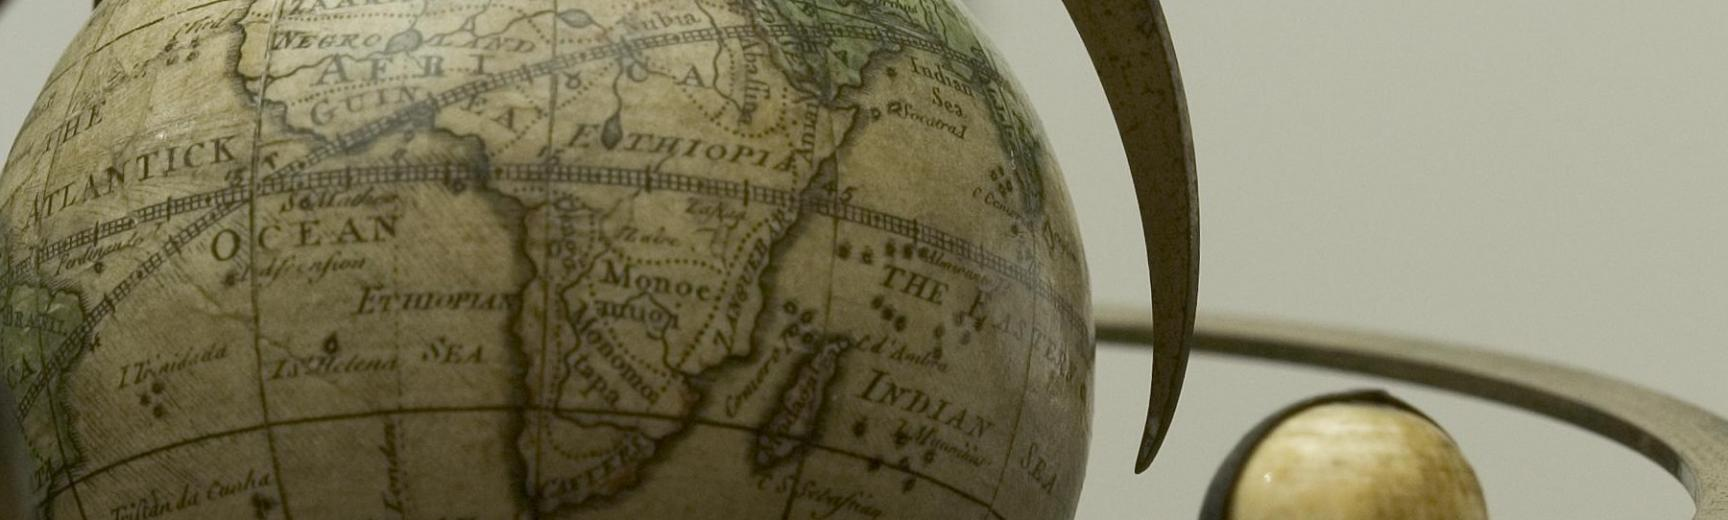 Renaissance Globe Project banner featuring a terrestrial globe signed by Richard Cushee, London, c. 1731, inventory number 35757